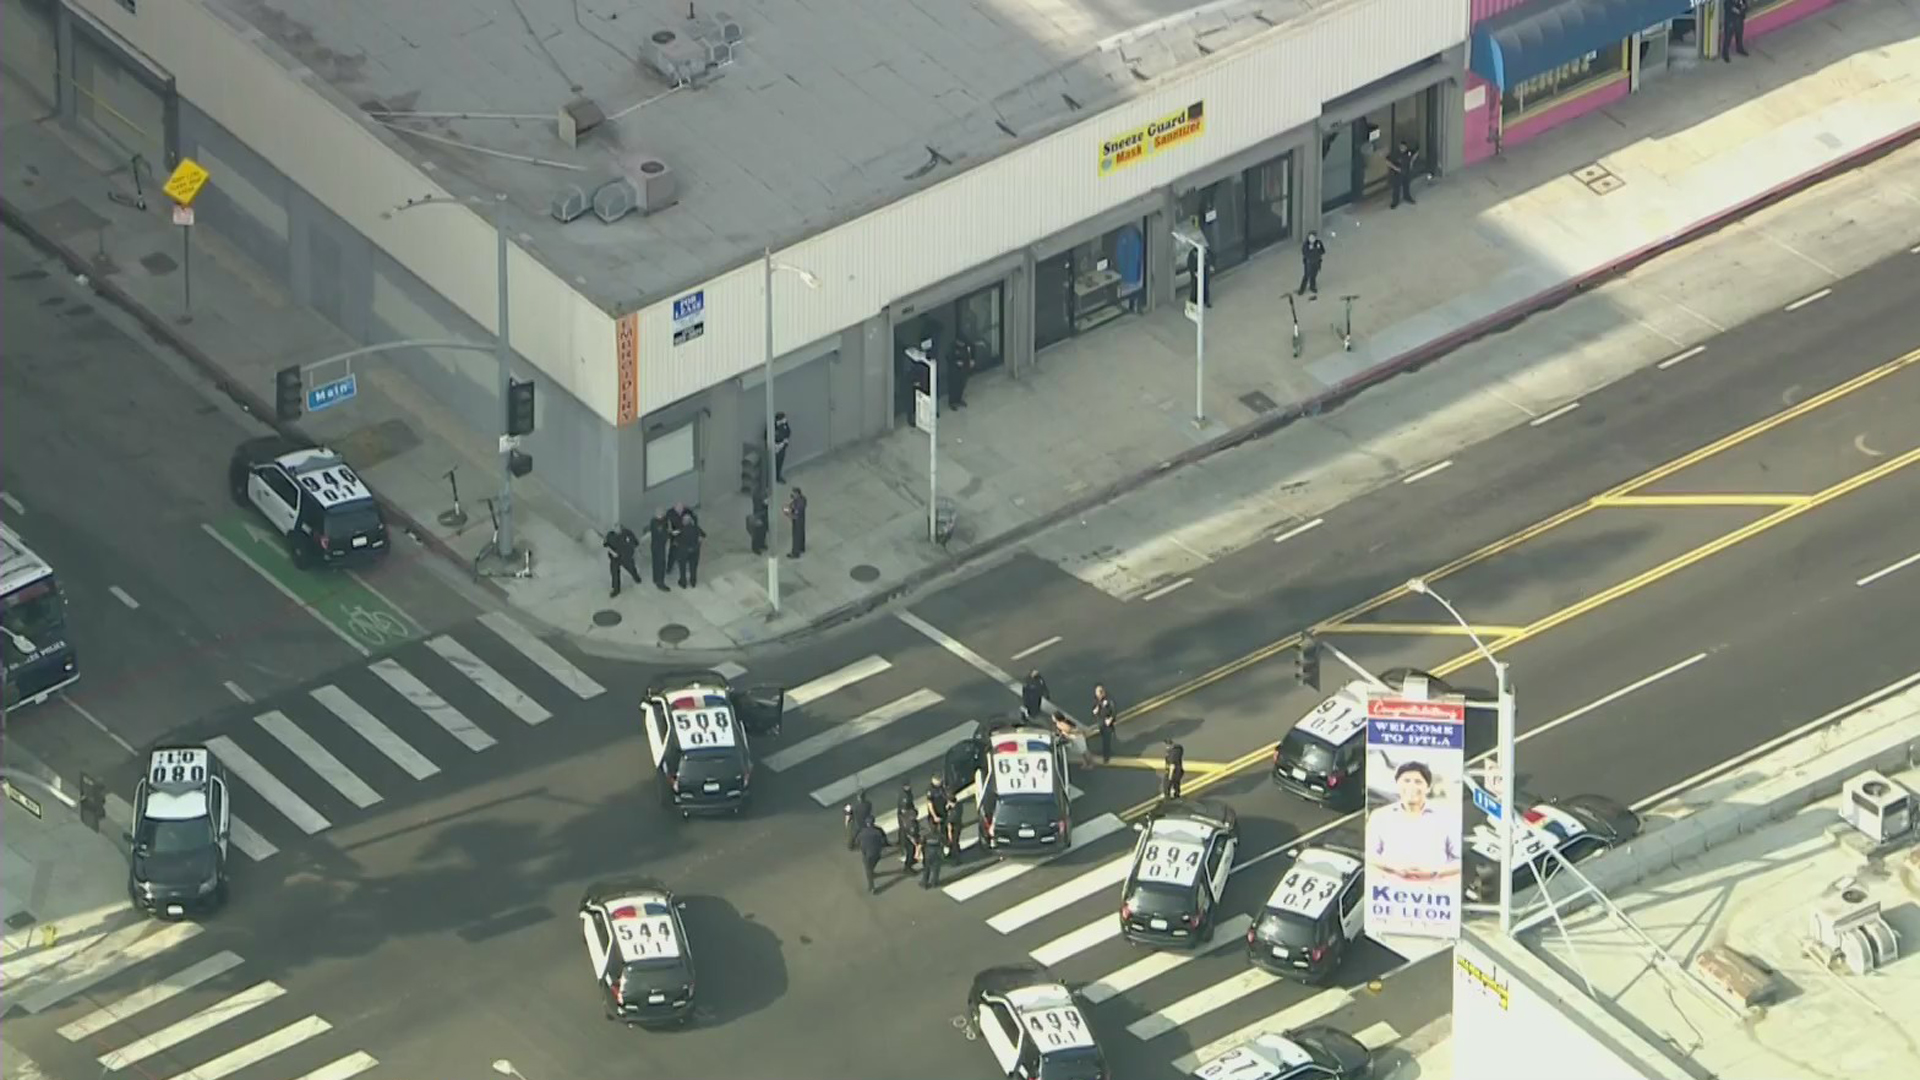 Several LAPD units respond to a police shooting in downtown Los Angeles on Oct. 23, 2020. (KTLA)